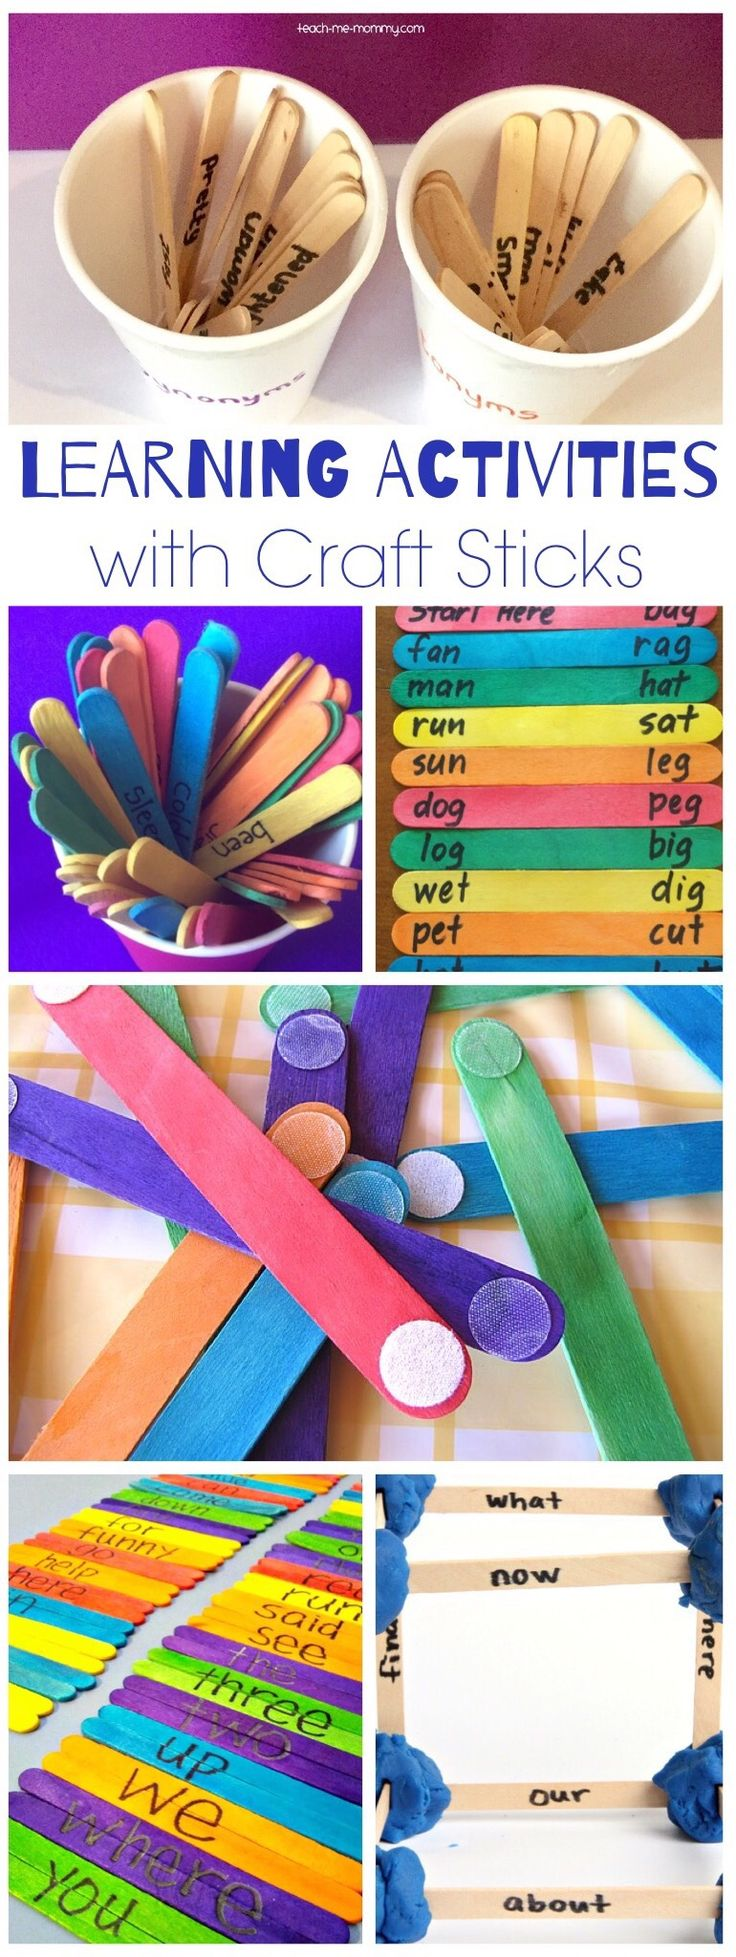 Roundup of amazing learning activities for kids to do with craft sticks!